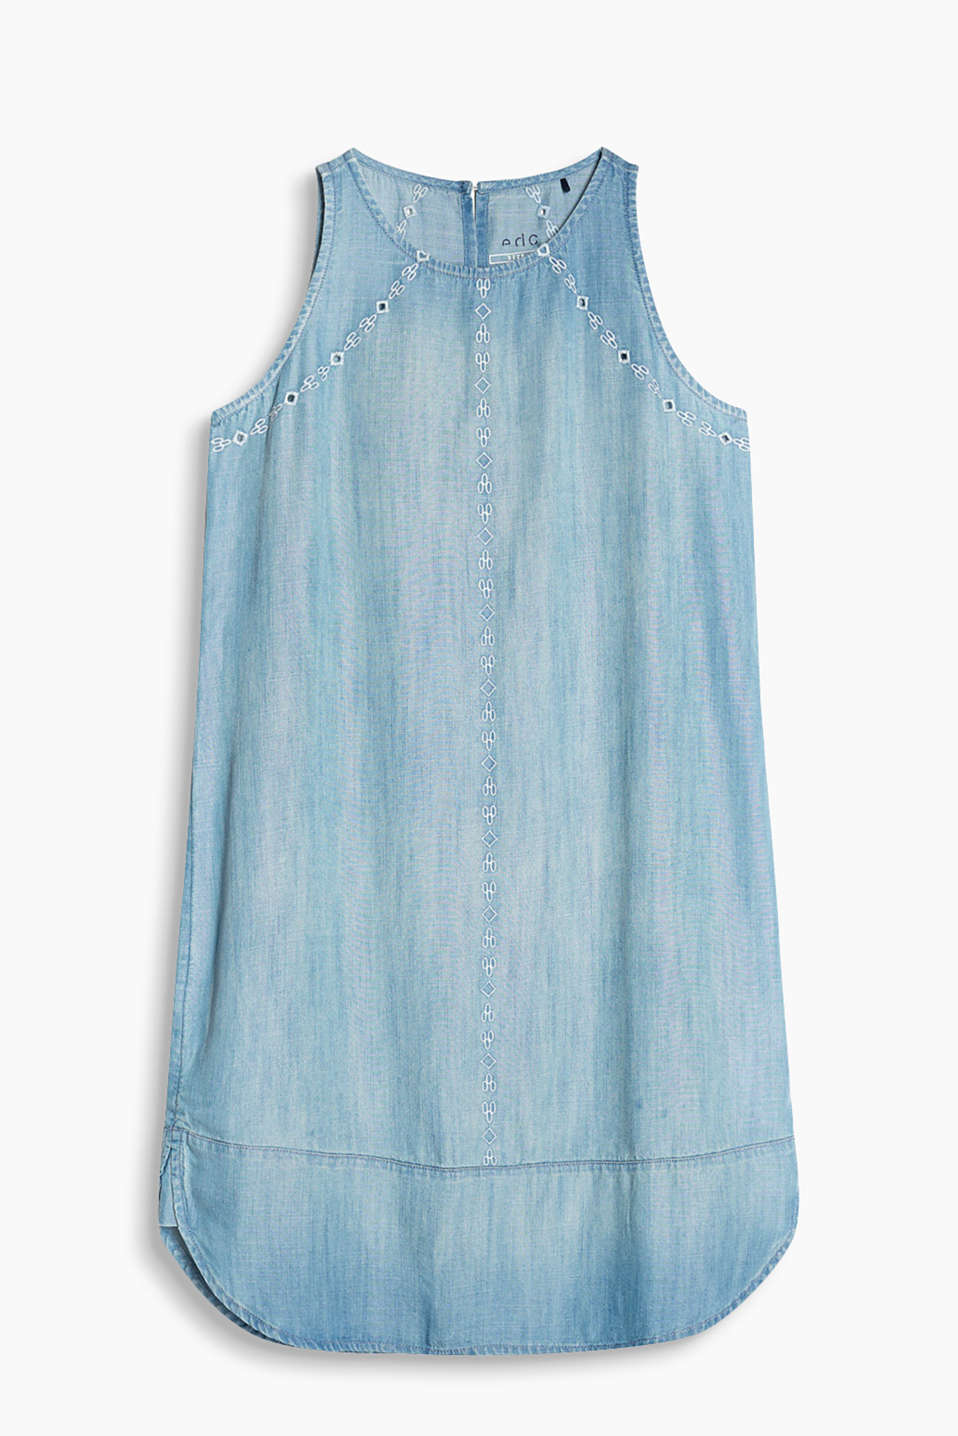 Sleeveless dress in pale summer denim with embroidery